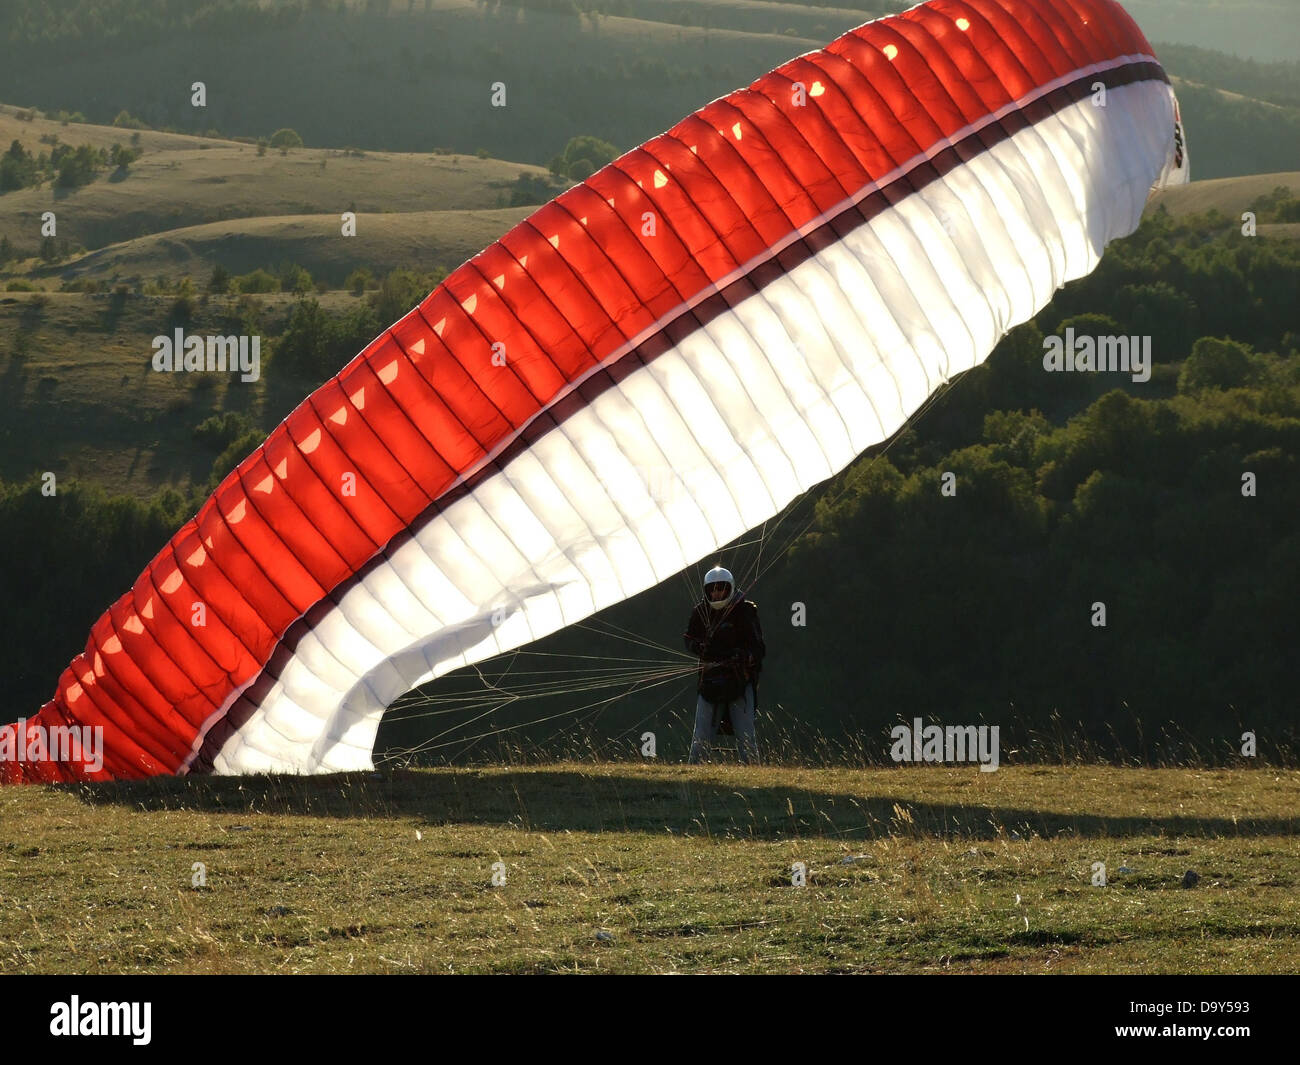 parachute paragliding extreme sport sport wind - Stock Image